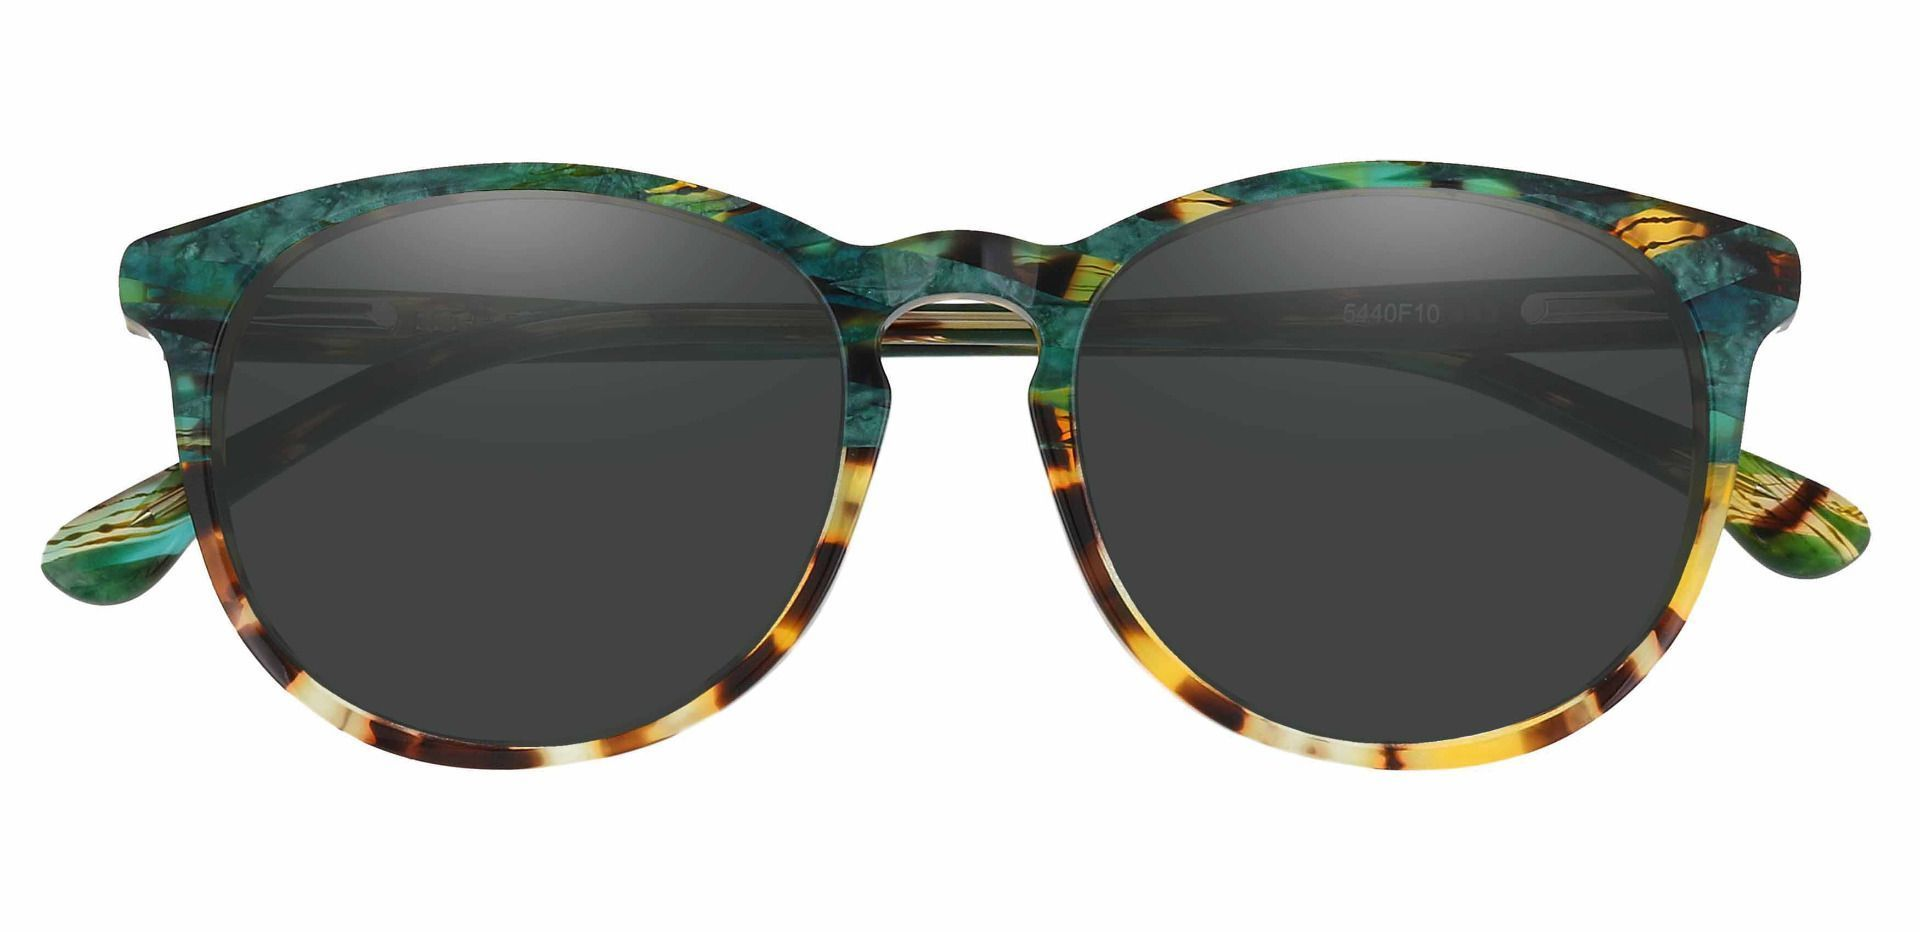 Carriage Round Reading Sunglasses - Multi Color Frame With Gray Lenses